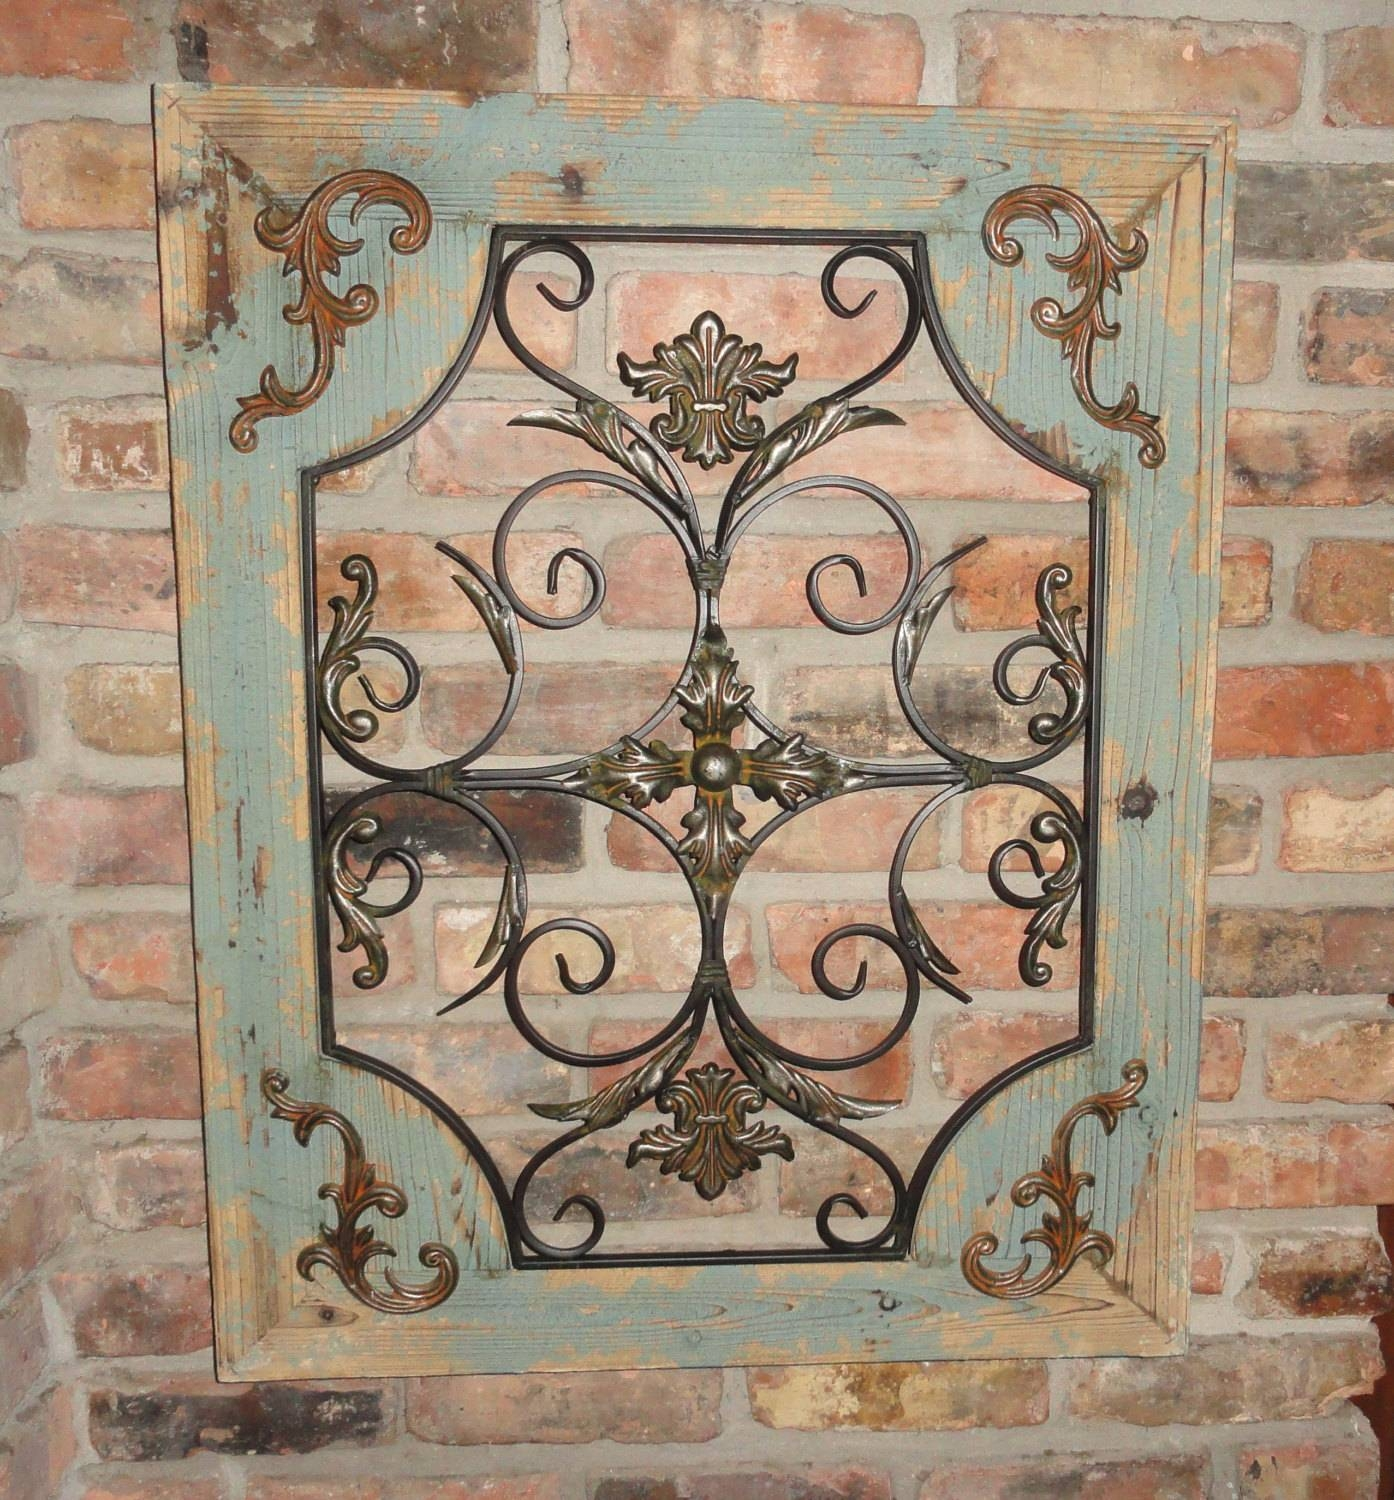 Rustic Turquoise Wood & Metal Wall Decor Cottage Chic Shabby Intended For 2018 Country Metal Wall Art (View 18 of 30)